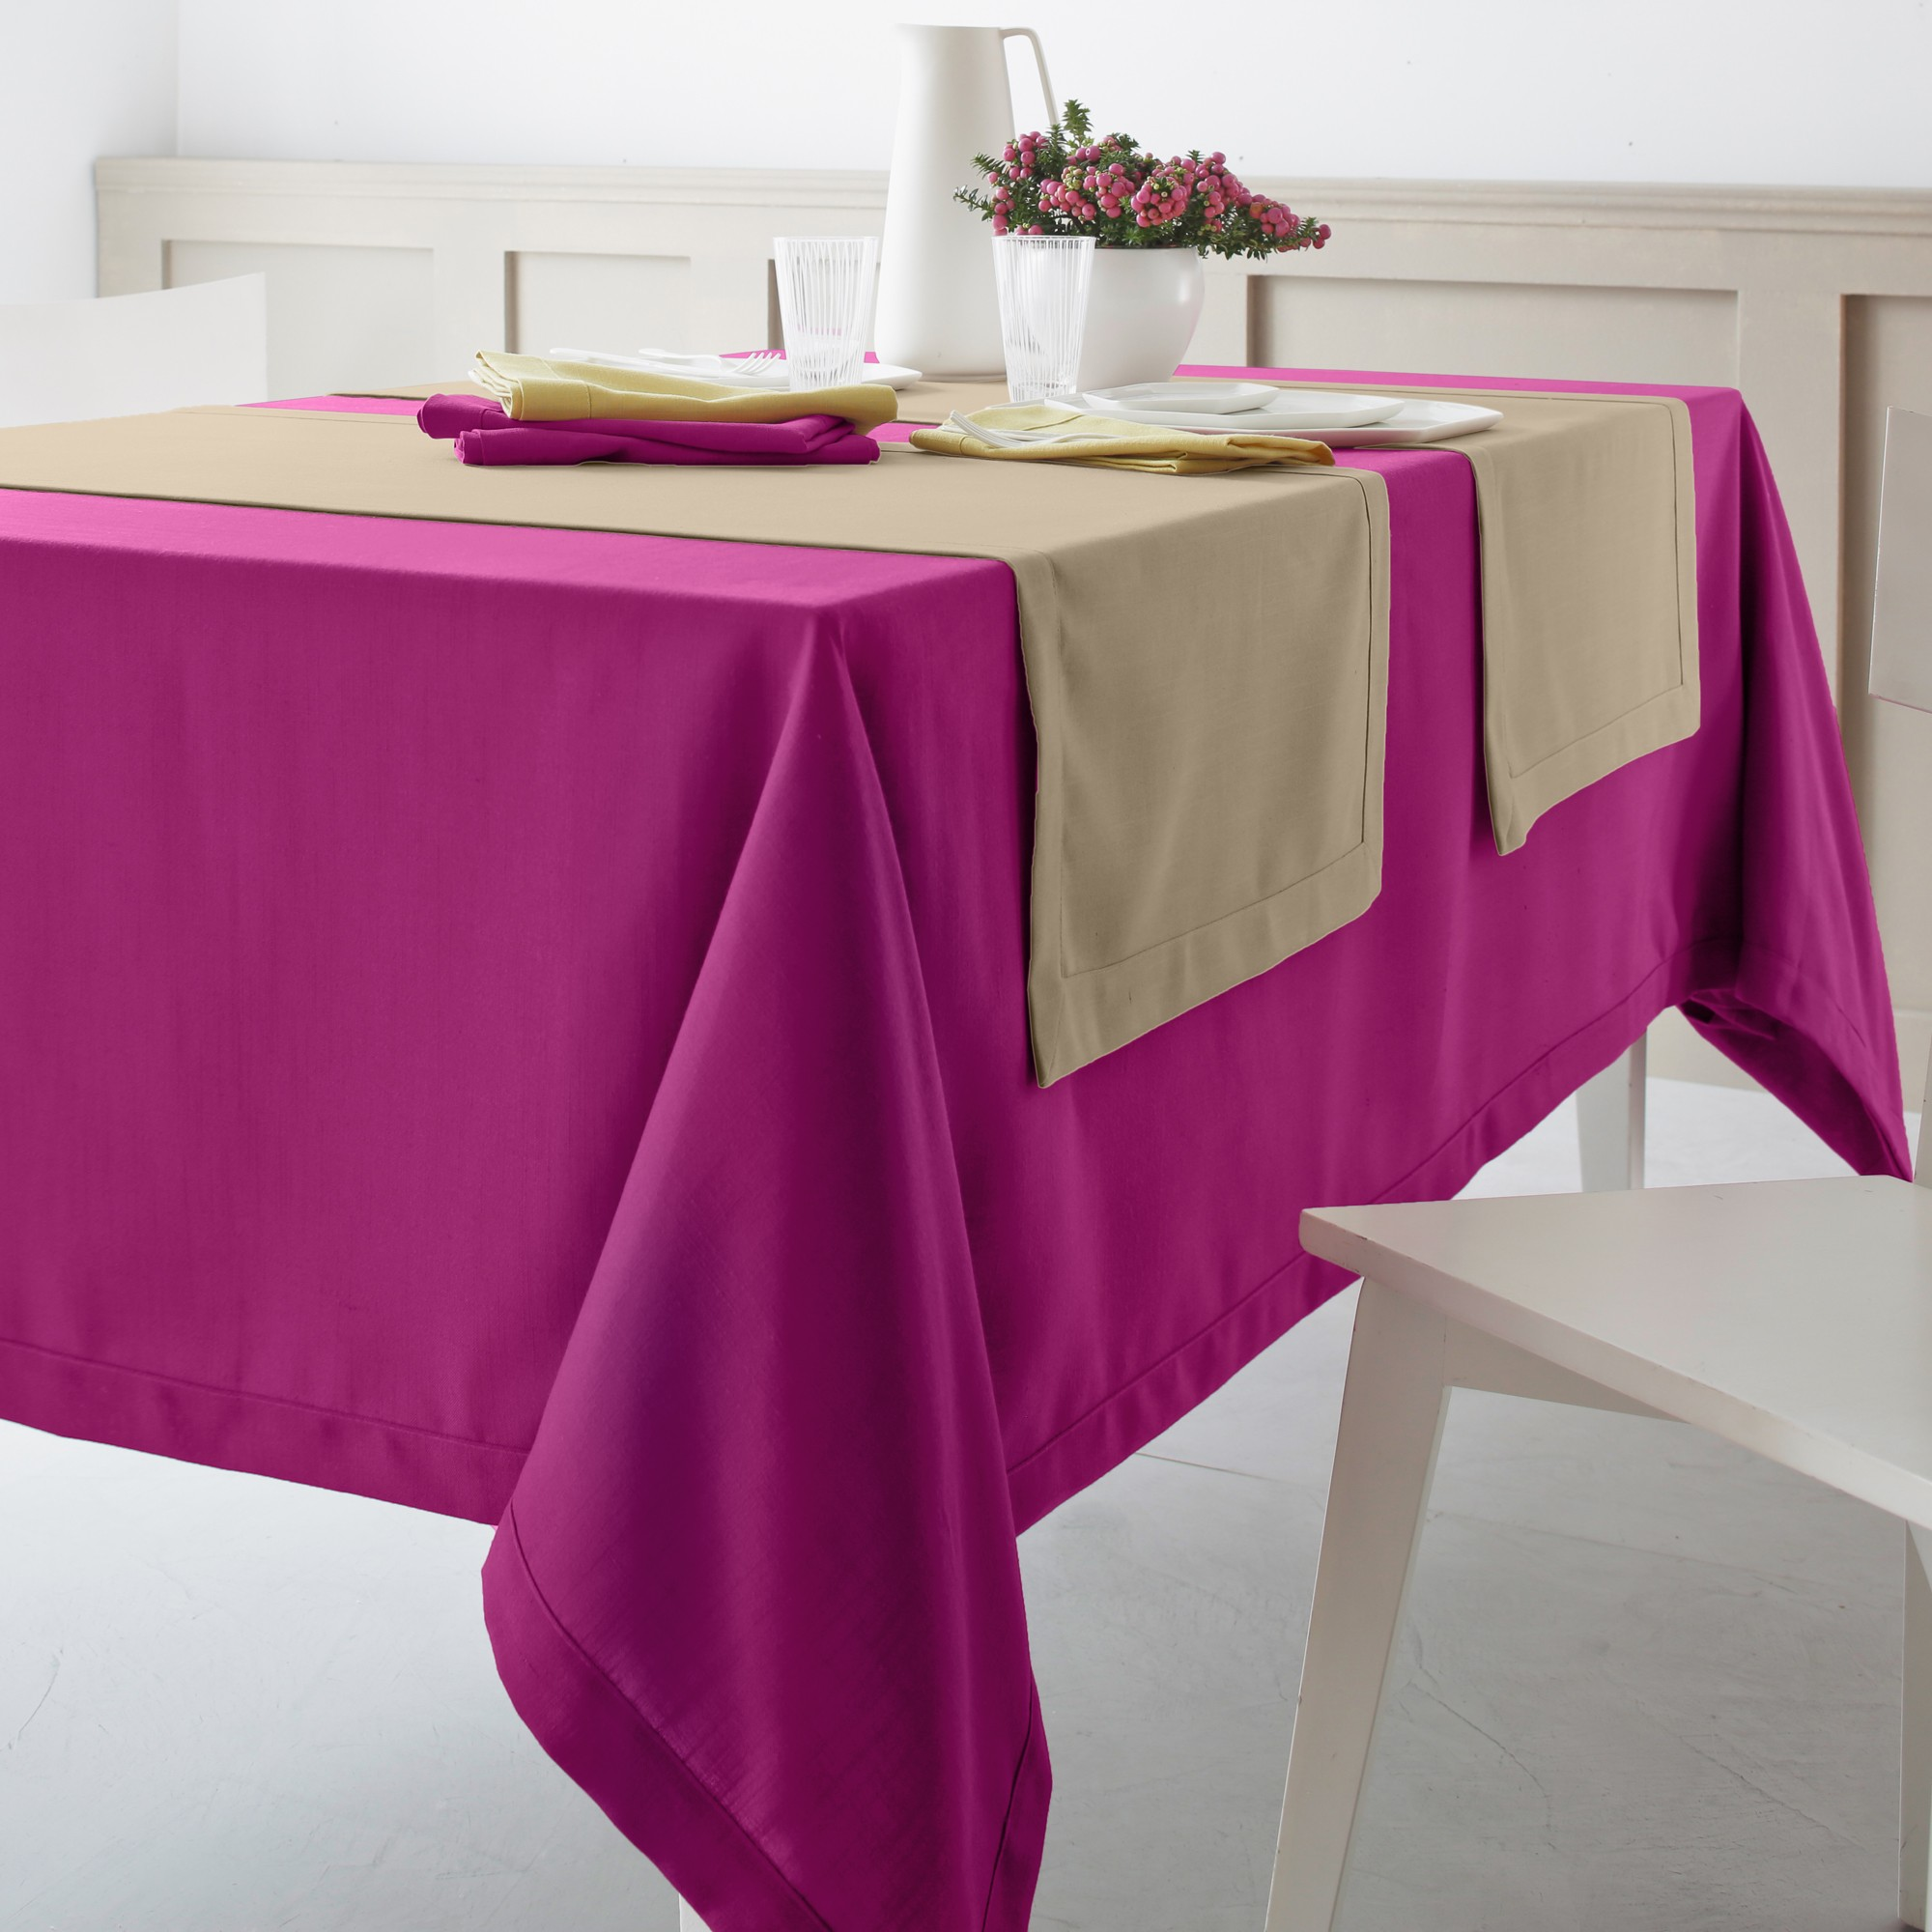 Nappe Rectangulaire Grande Taille Nappe Ovale Grande Taille